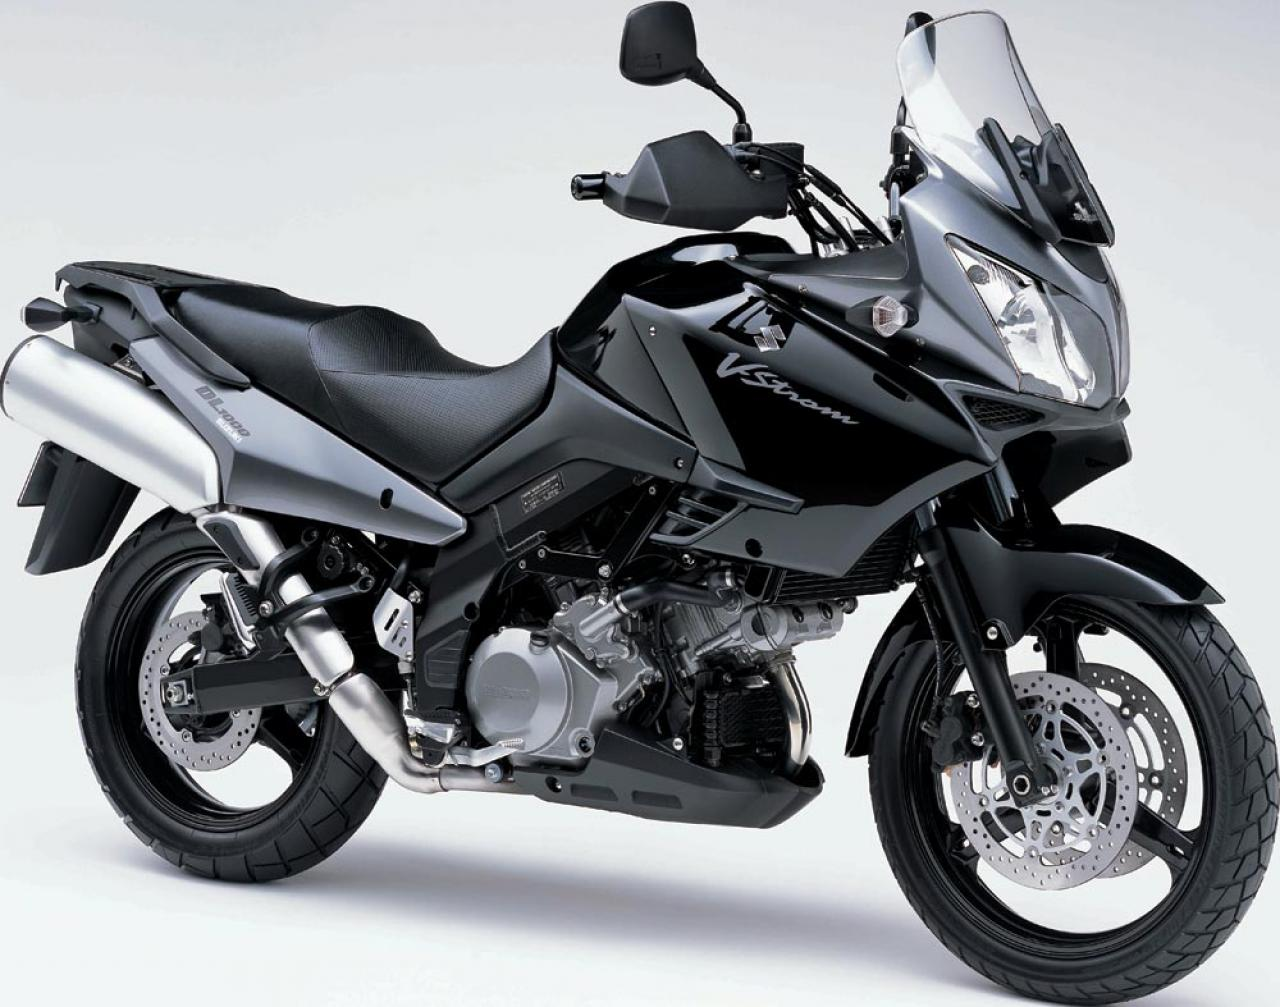 2008 suzuki v strom 650 moto zombdrive com. Black Bedroom Furniture Sets. Home Design Ideas